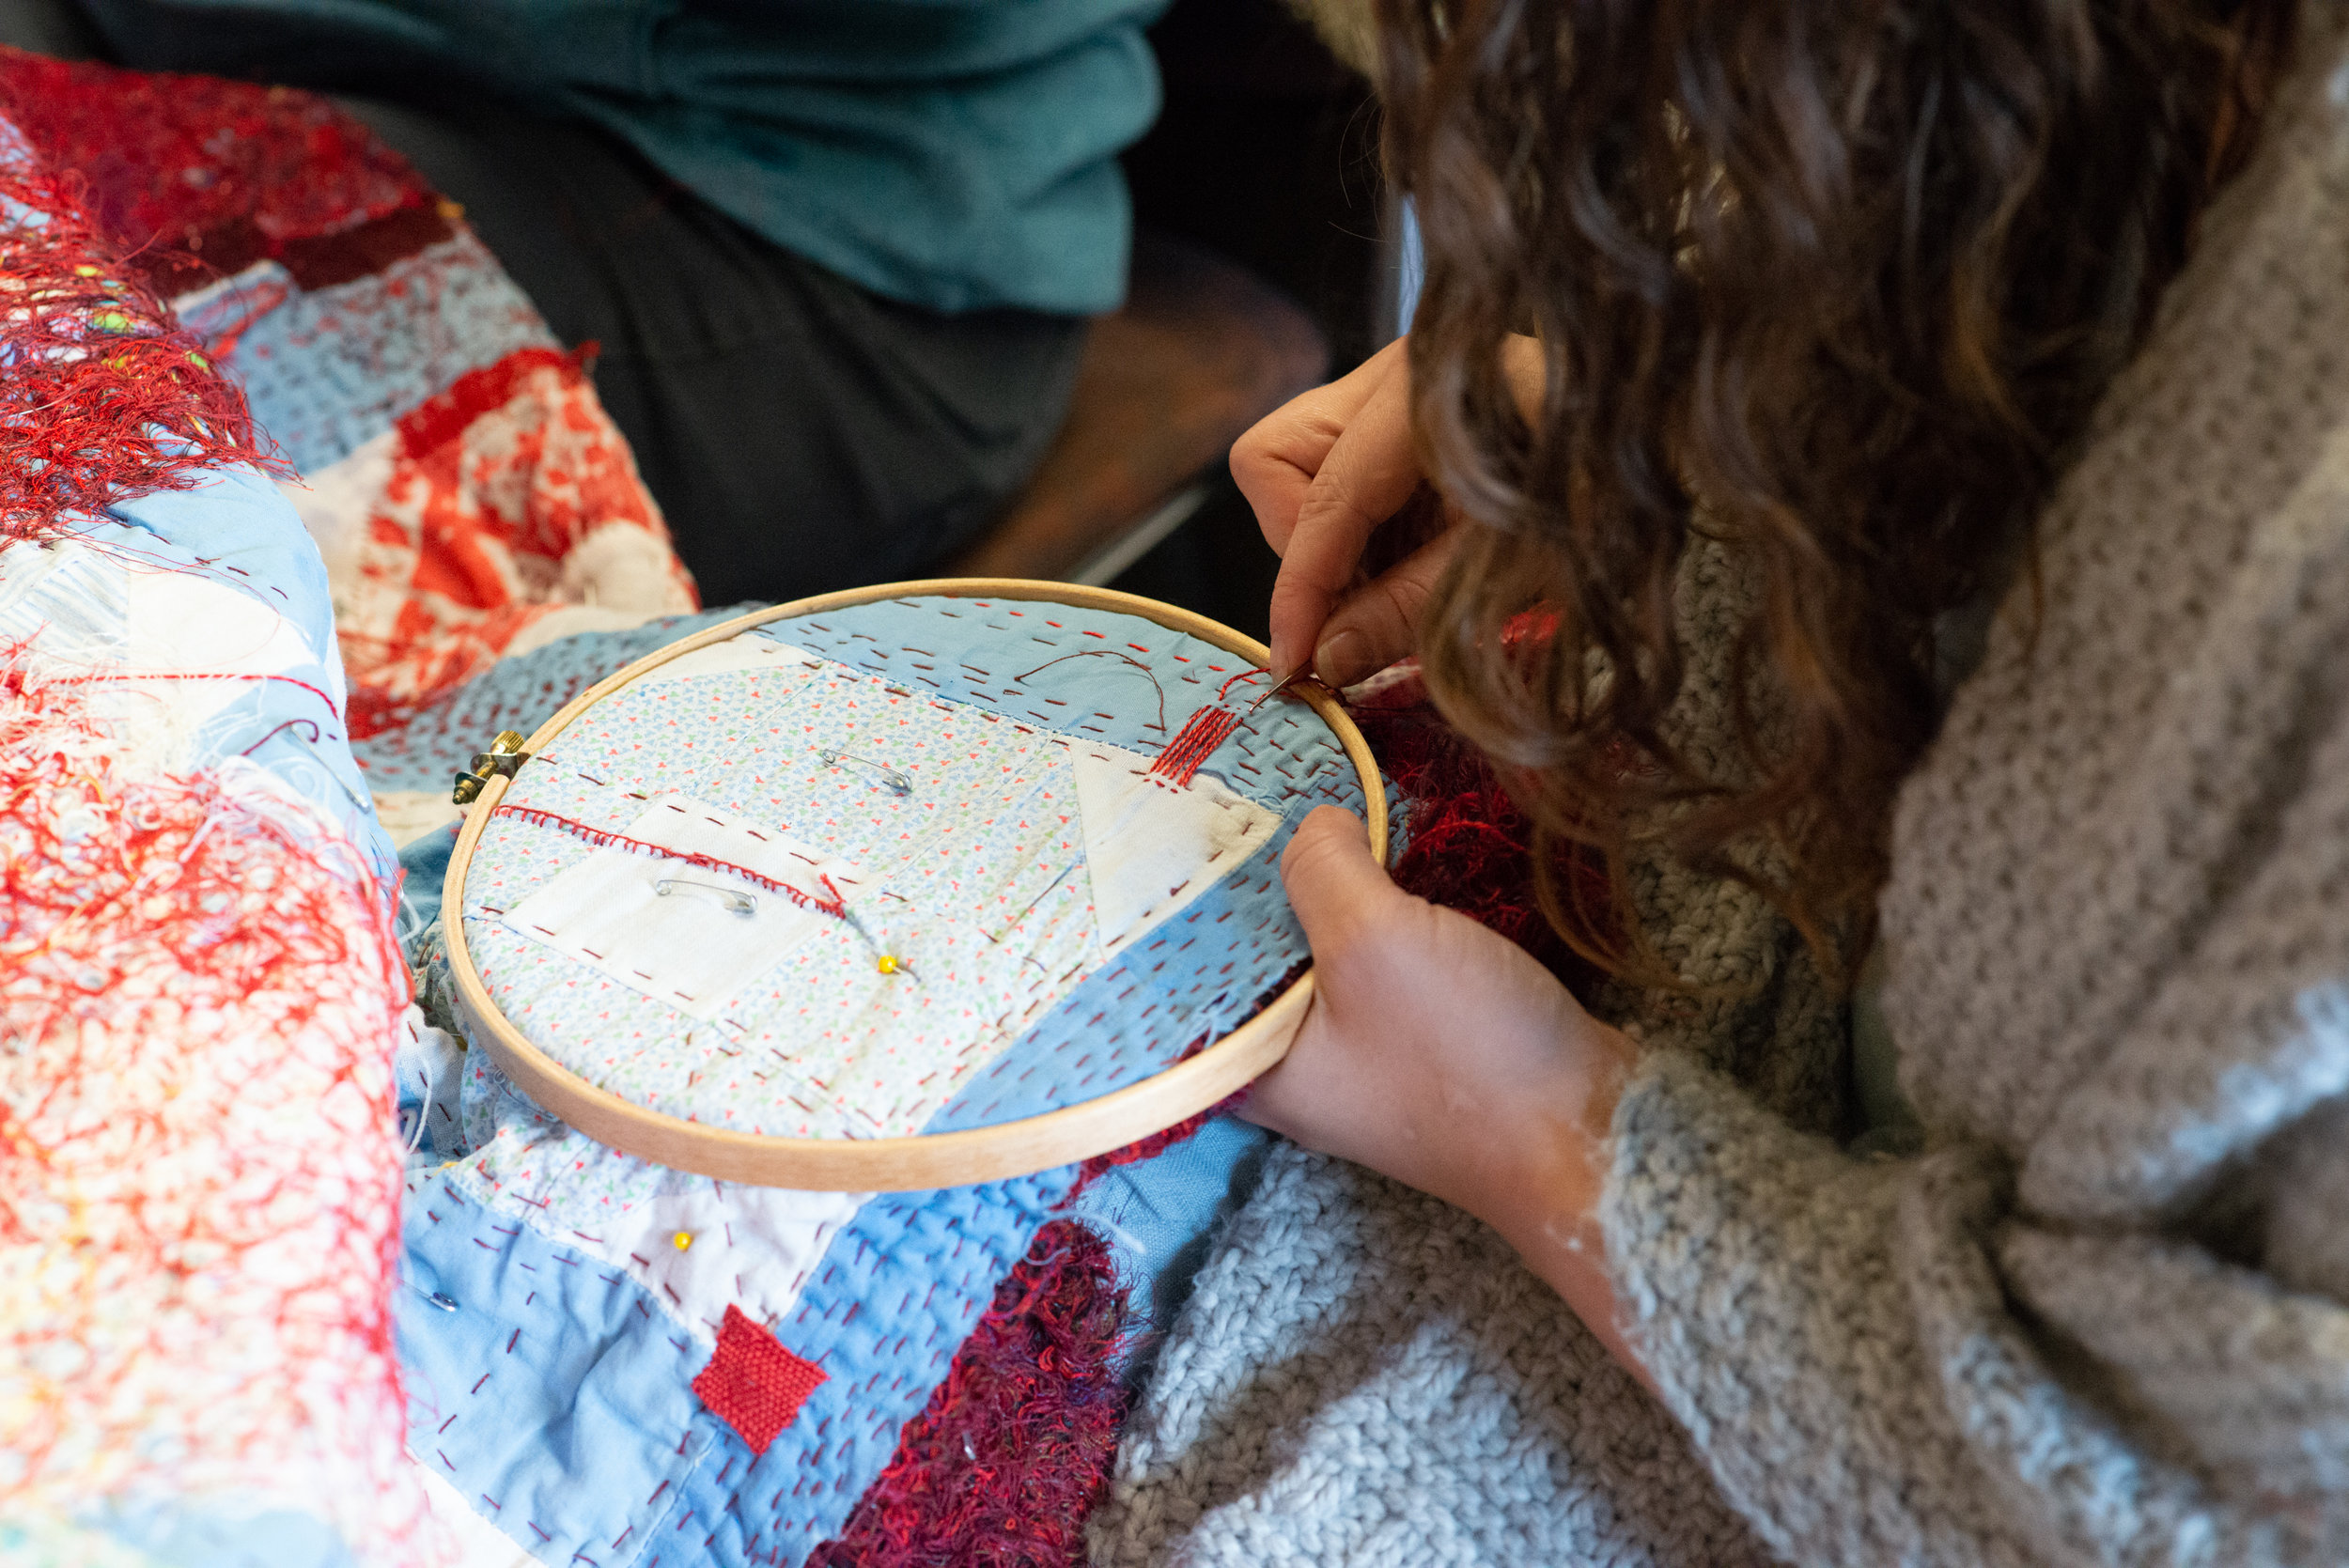 Our Practice - Cultivating care for cloth and community through the meditative process of slow stitching.